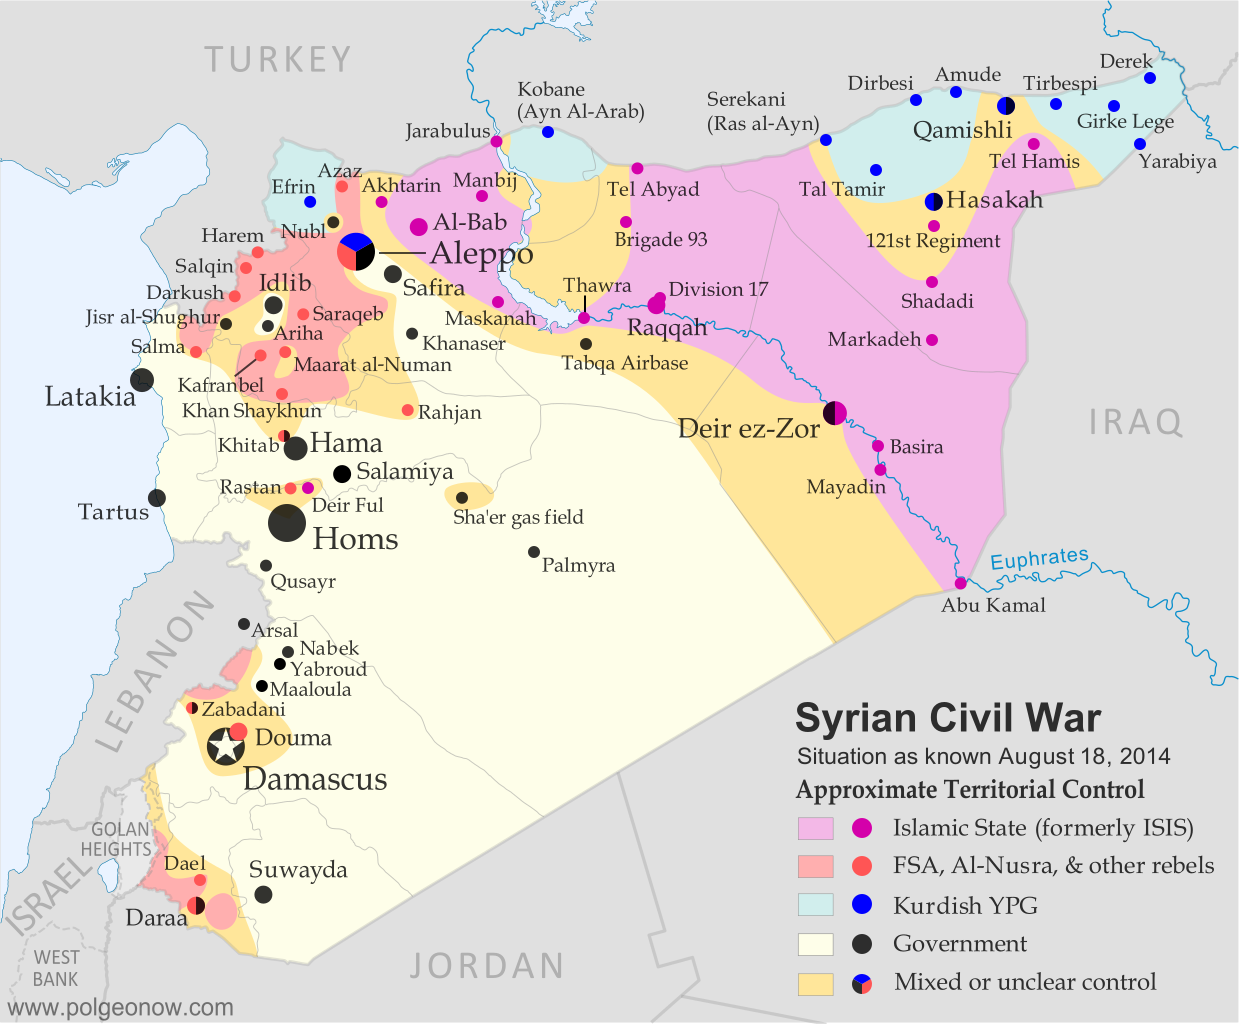 Map of fighting and territorial control in Syria's Civil War (Free Syrian Army rebels, Kurdish groups, Al-Nusra Front, Islamic State (ISIS/ISIL) and others), updated for August 2014. Highlights recent locations of conflict and territorial control changes.